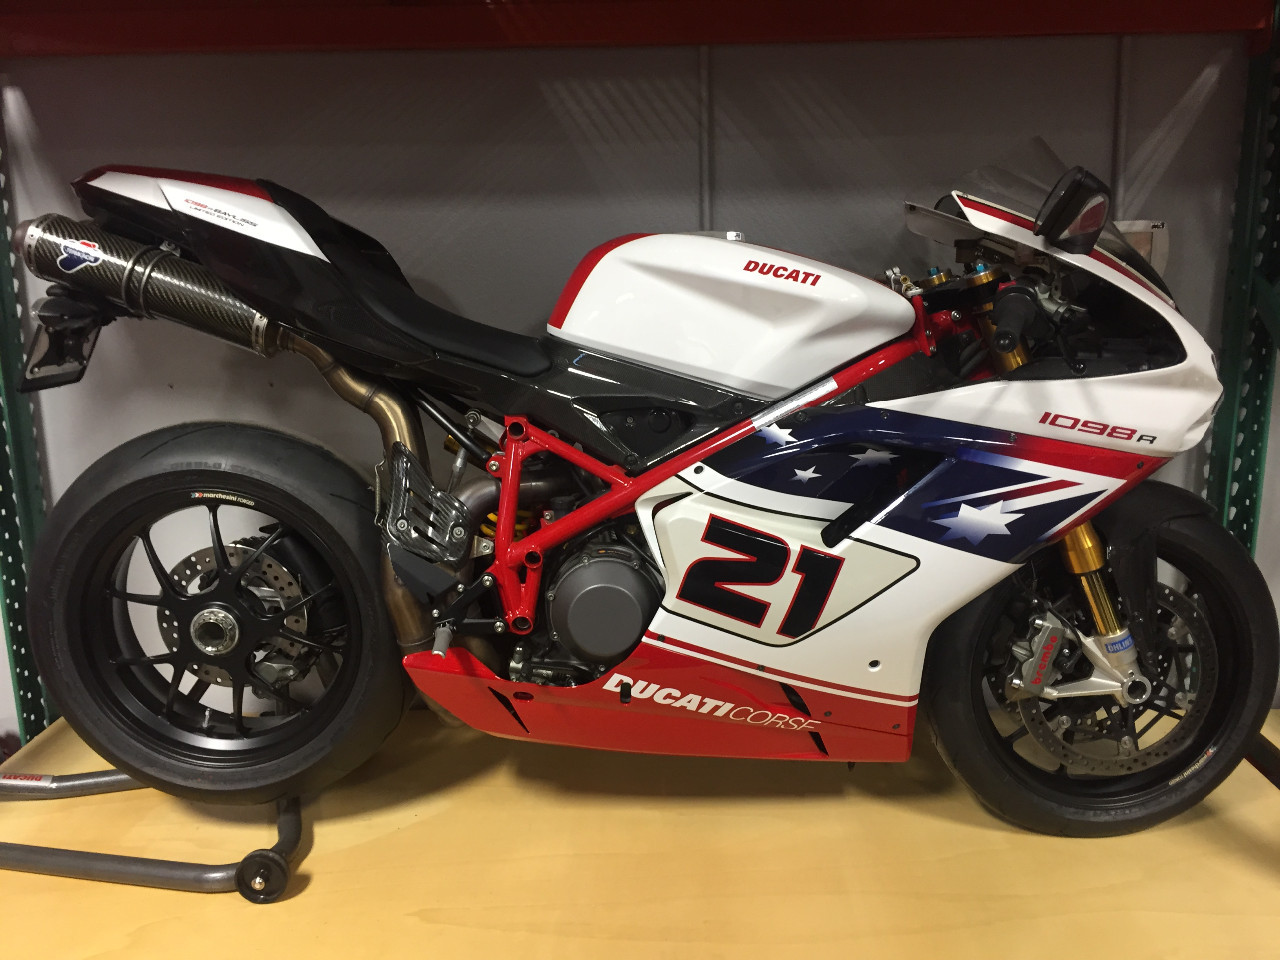 2009 Ducati 1098R Bayliss, motorcycle listing